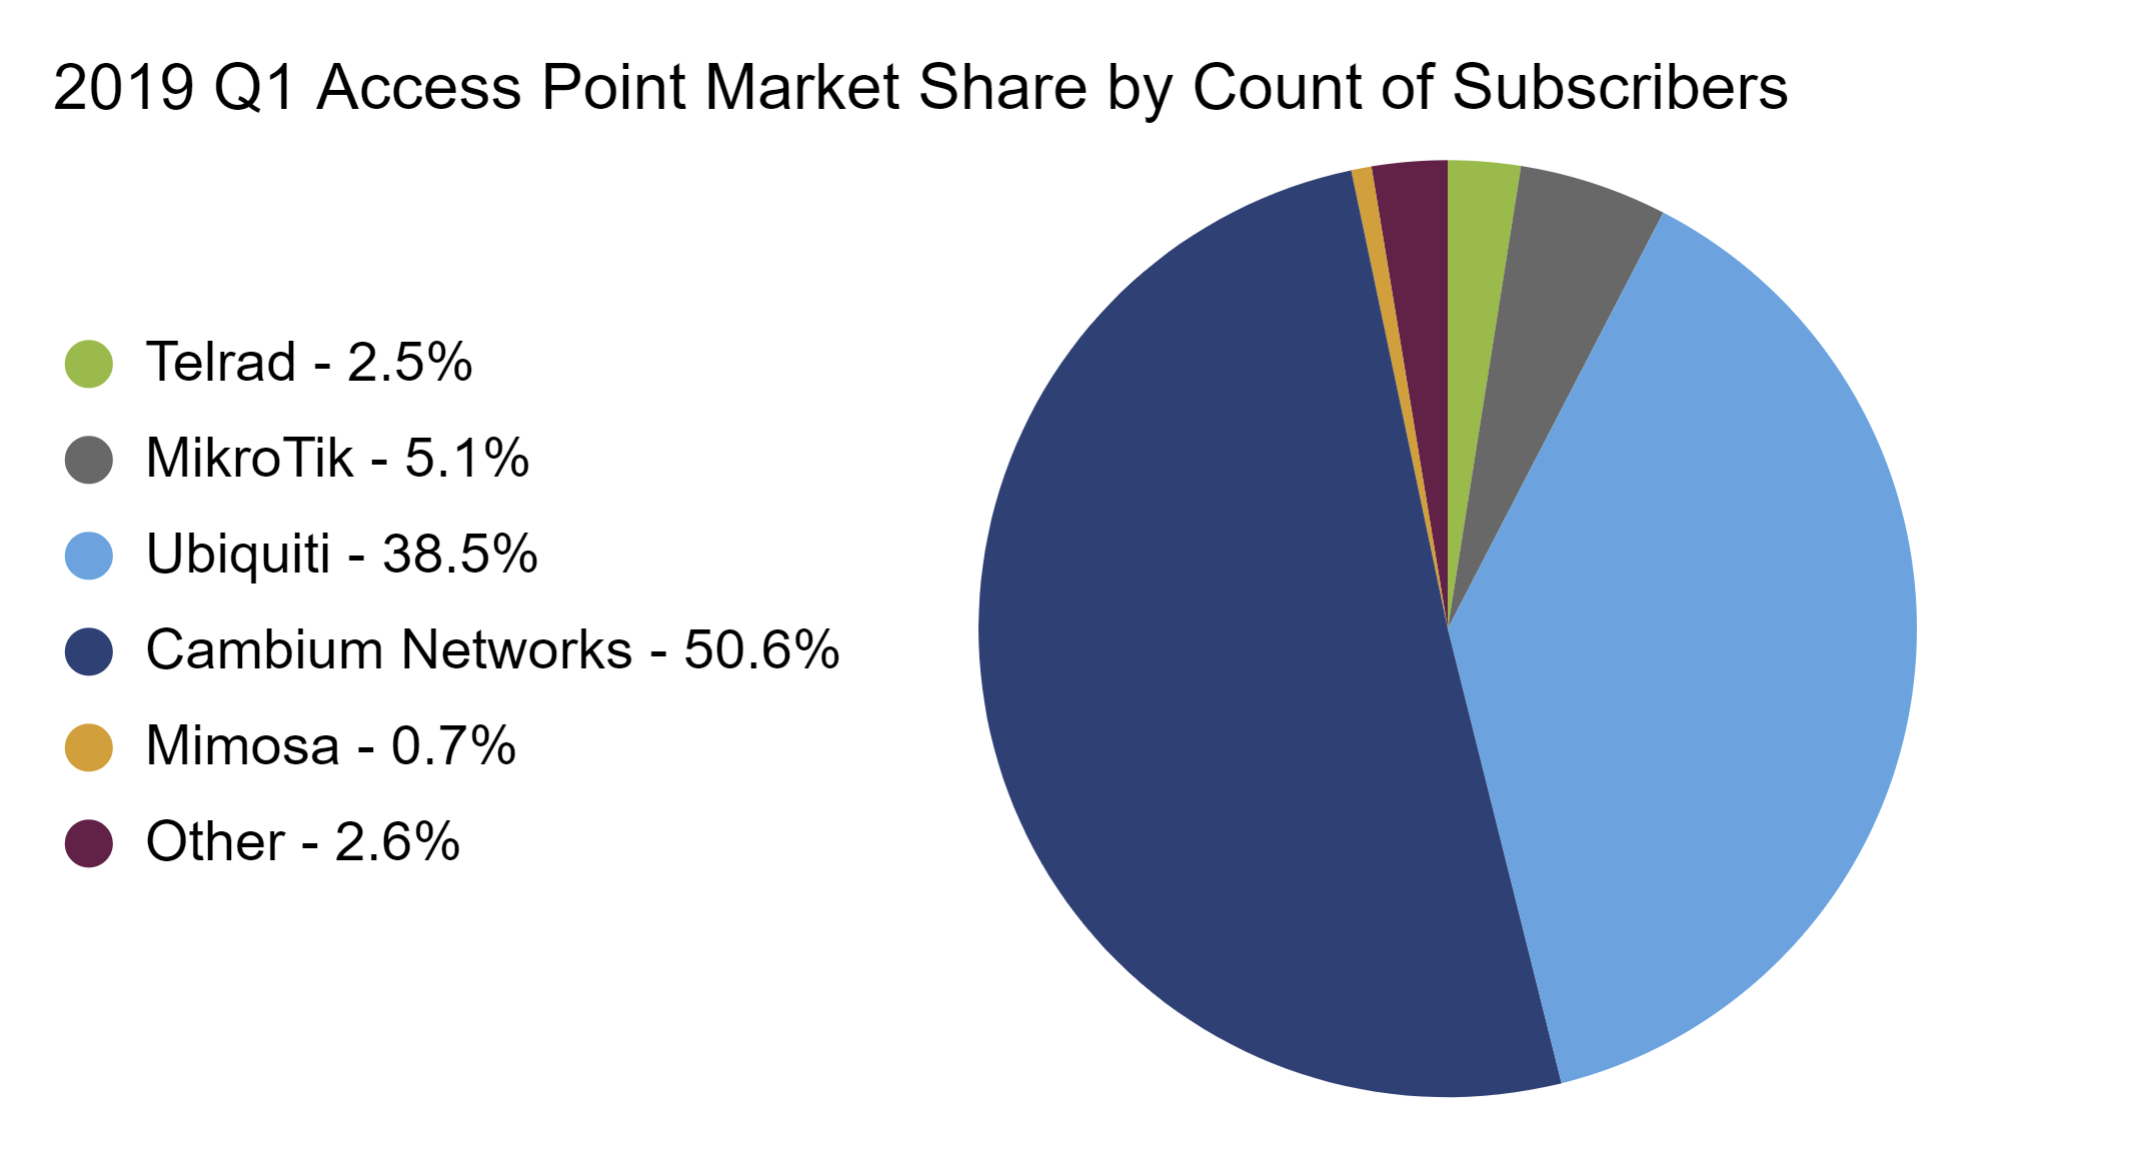 Access Point Comparison - 2019 Q1 AP Market Share by Count of Subs